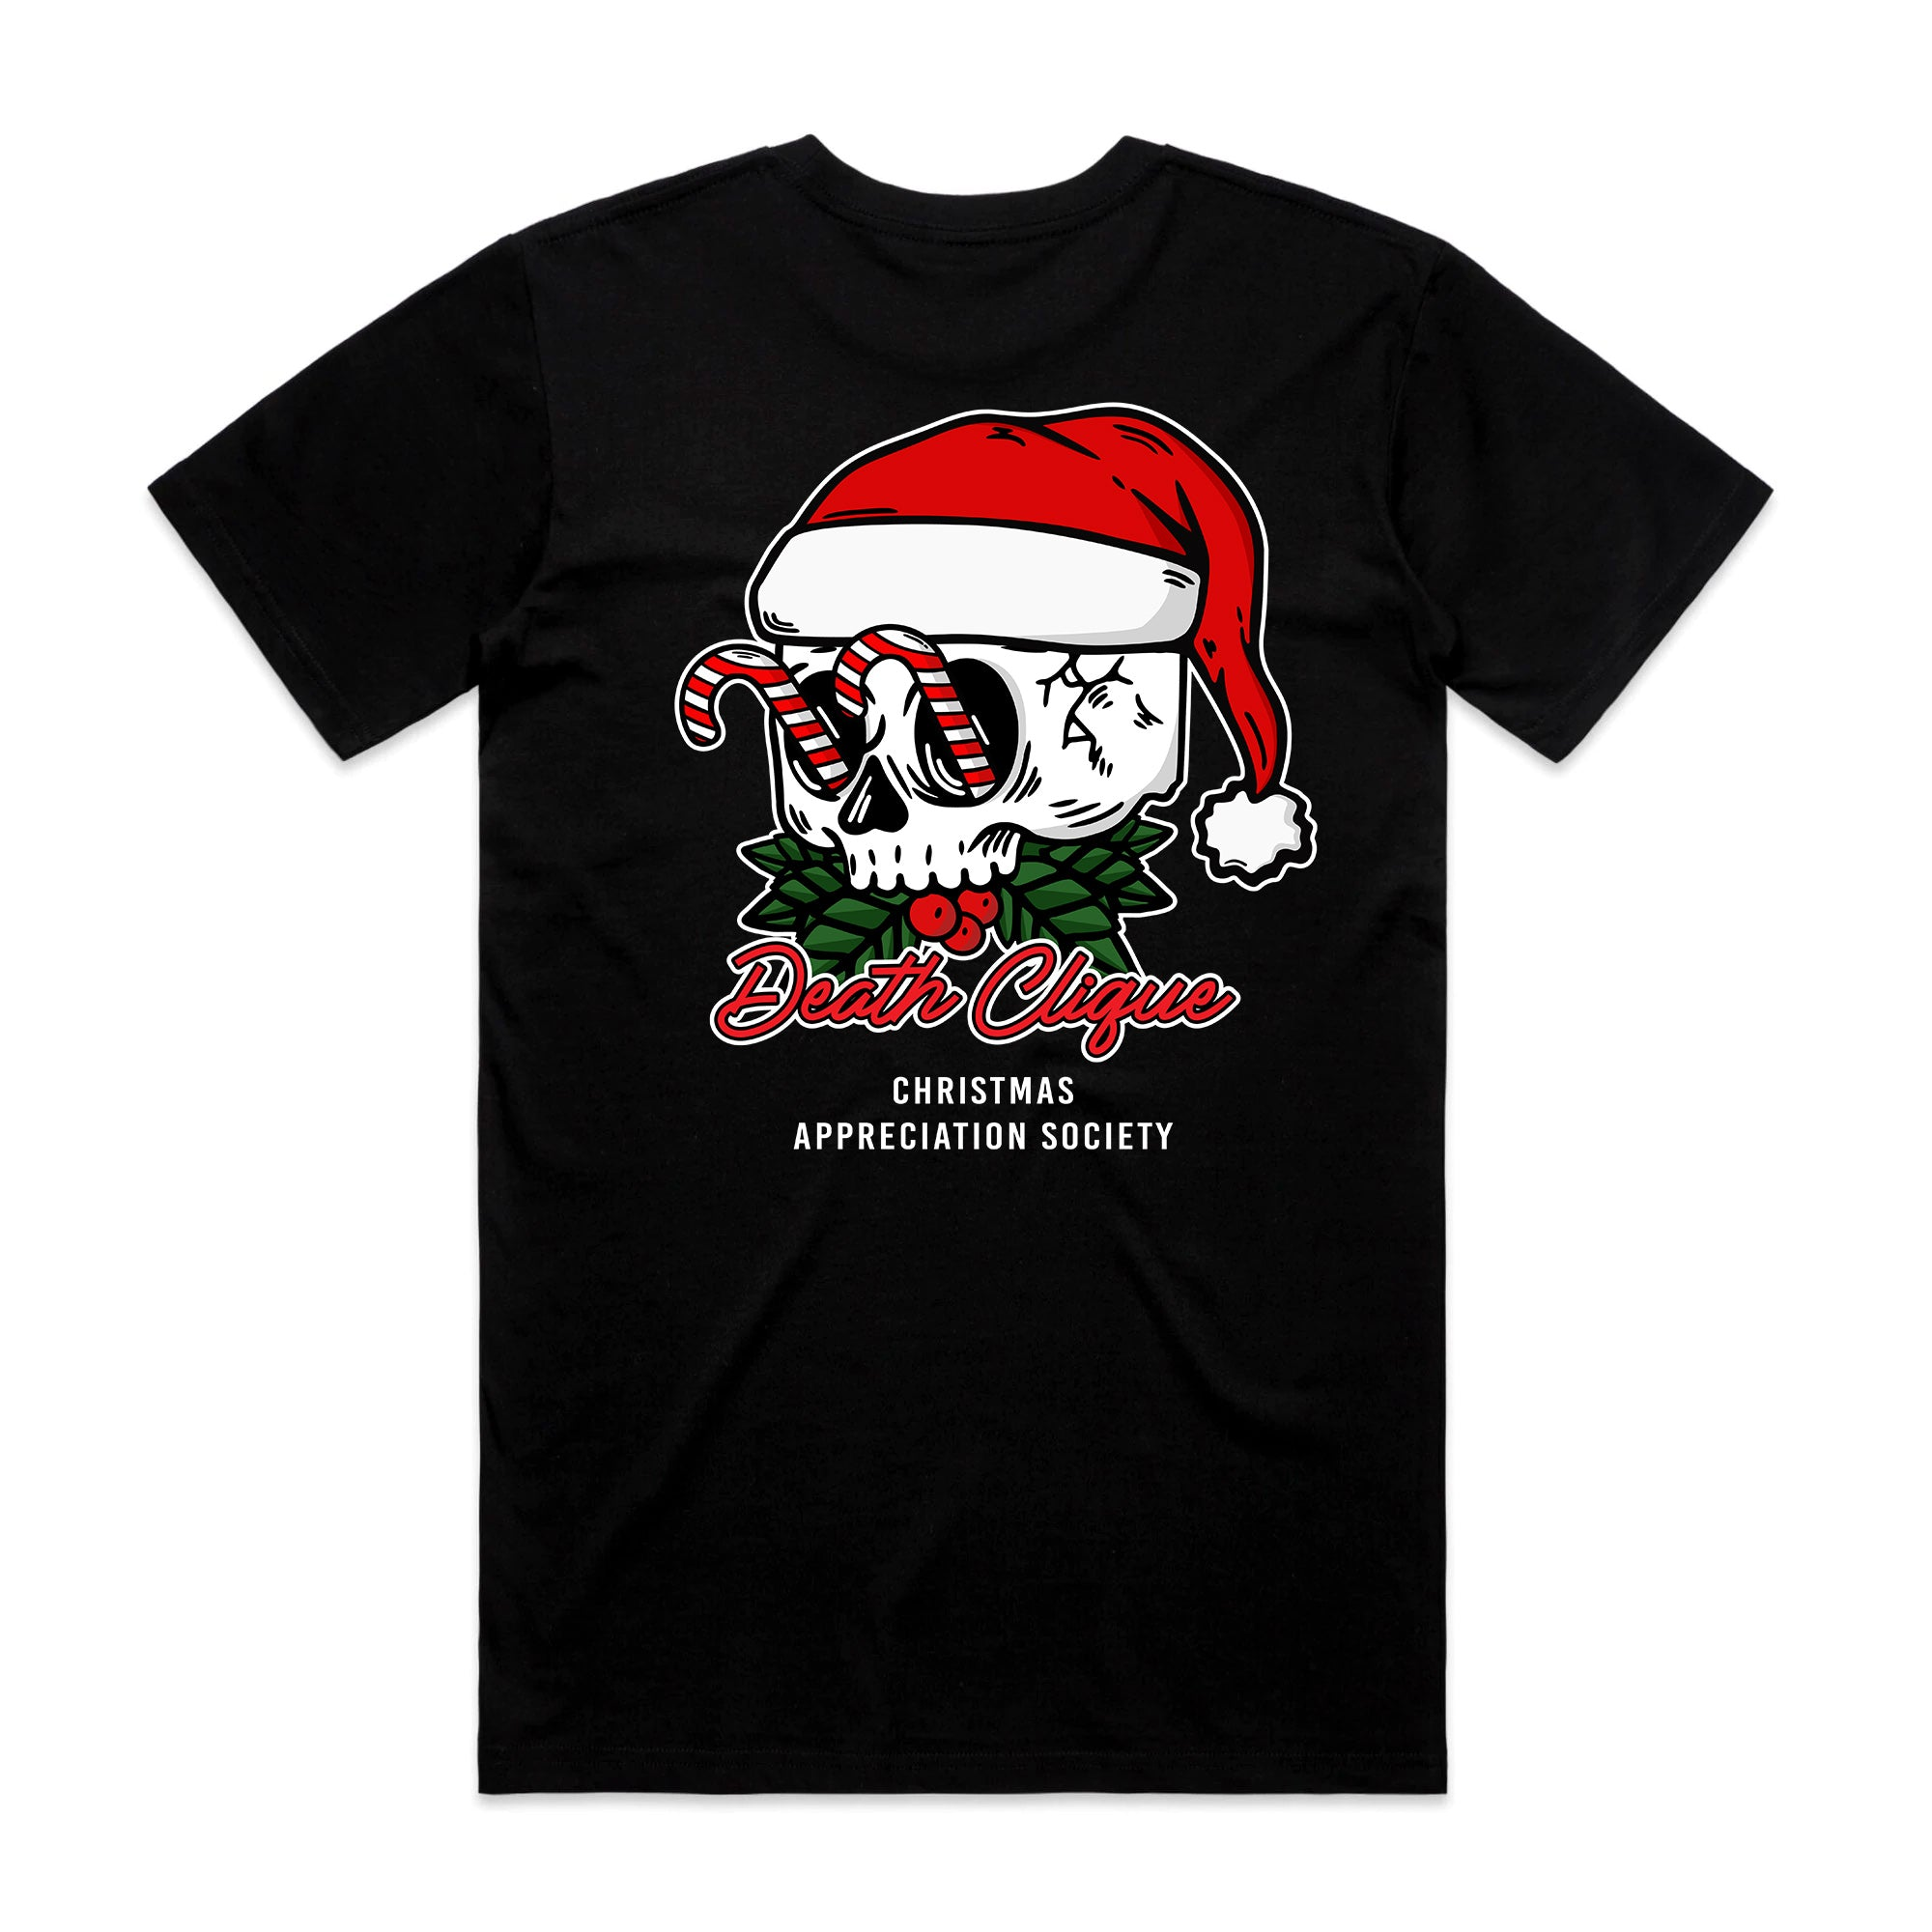 Christmas Appreciation Society Tee - Black